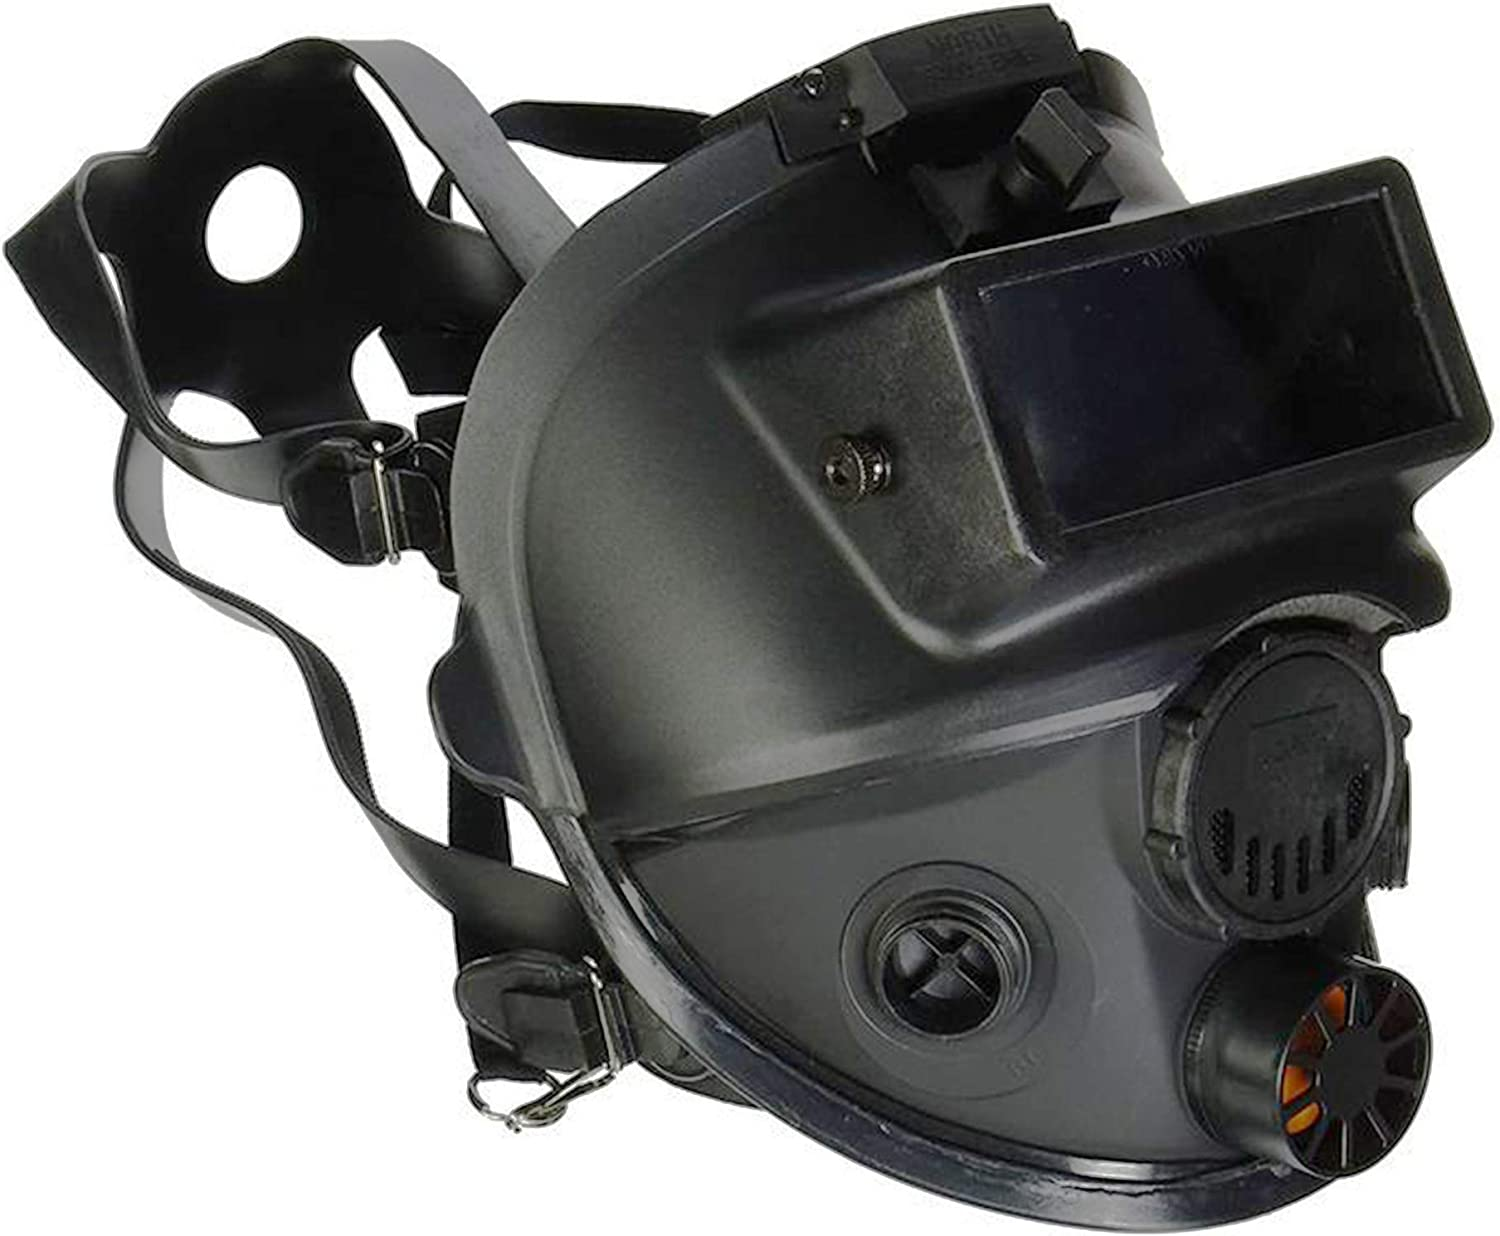 Honeywell North 7600 Series Niosh-Approved Full Facepiece Silicone Respirator With Welding Adaptor, Small (760008ASW)